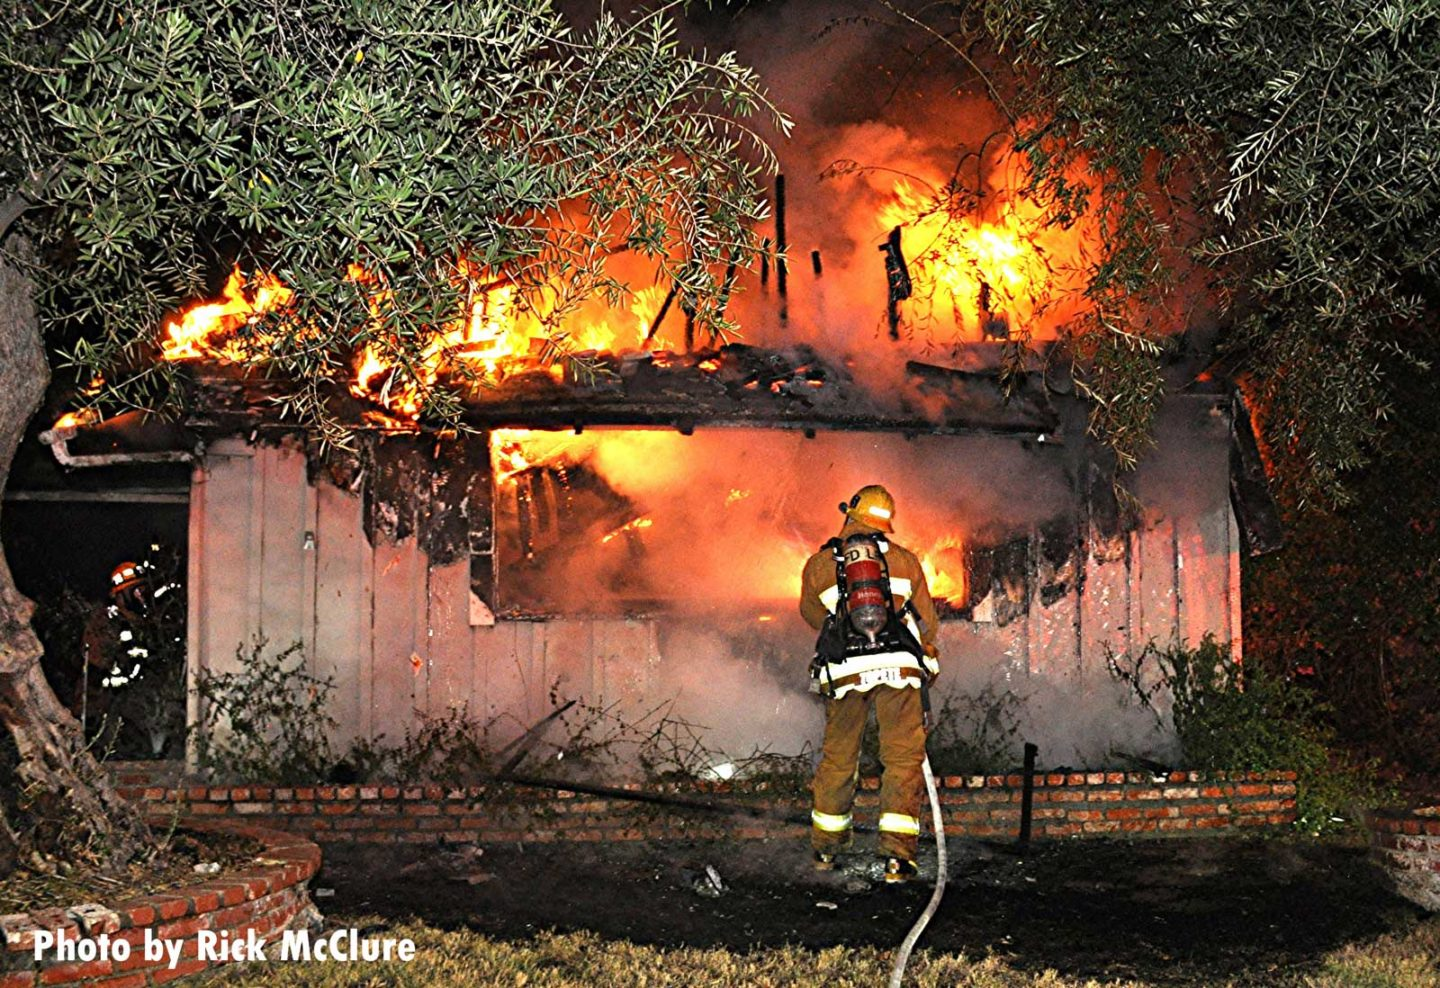 Massive flames rip through structure in Los Angeles